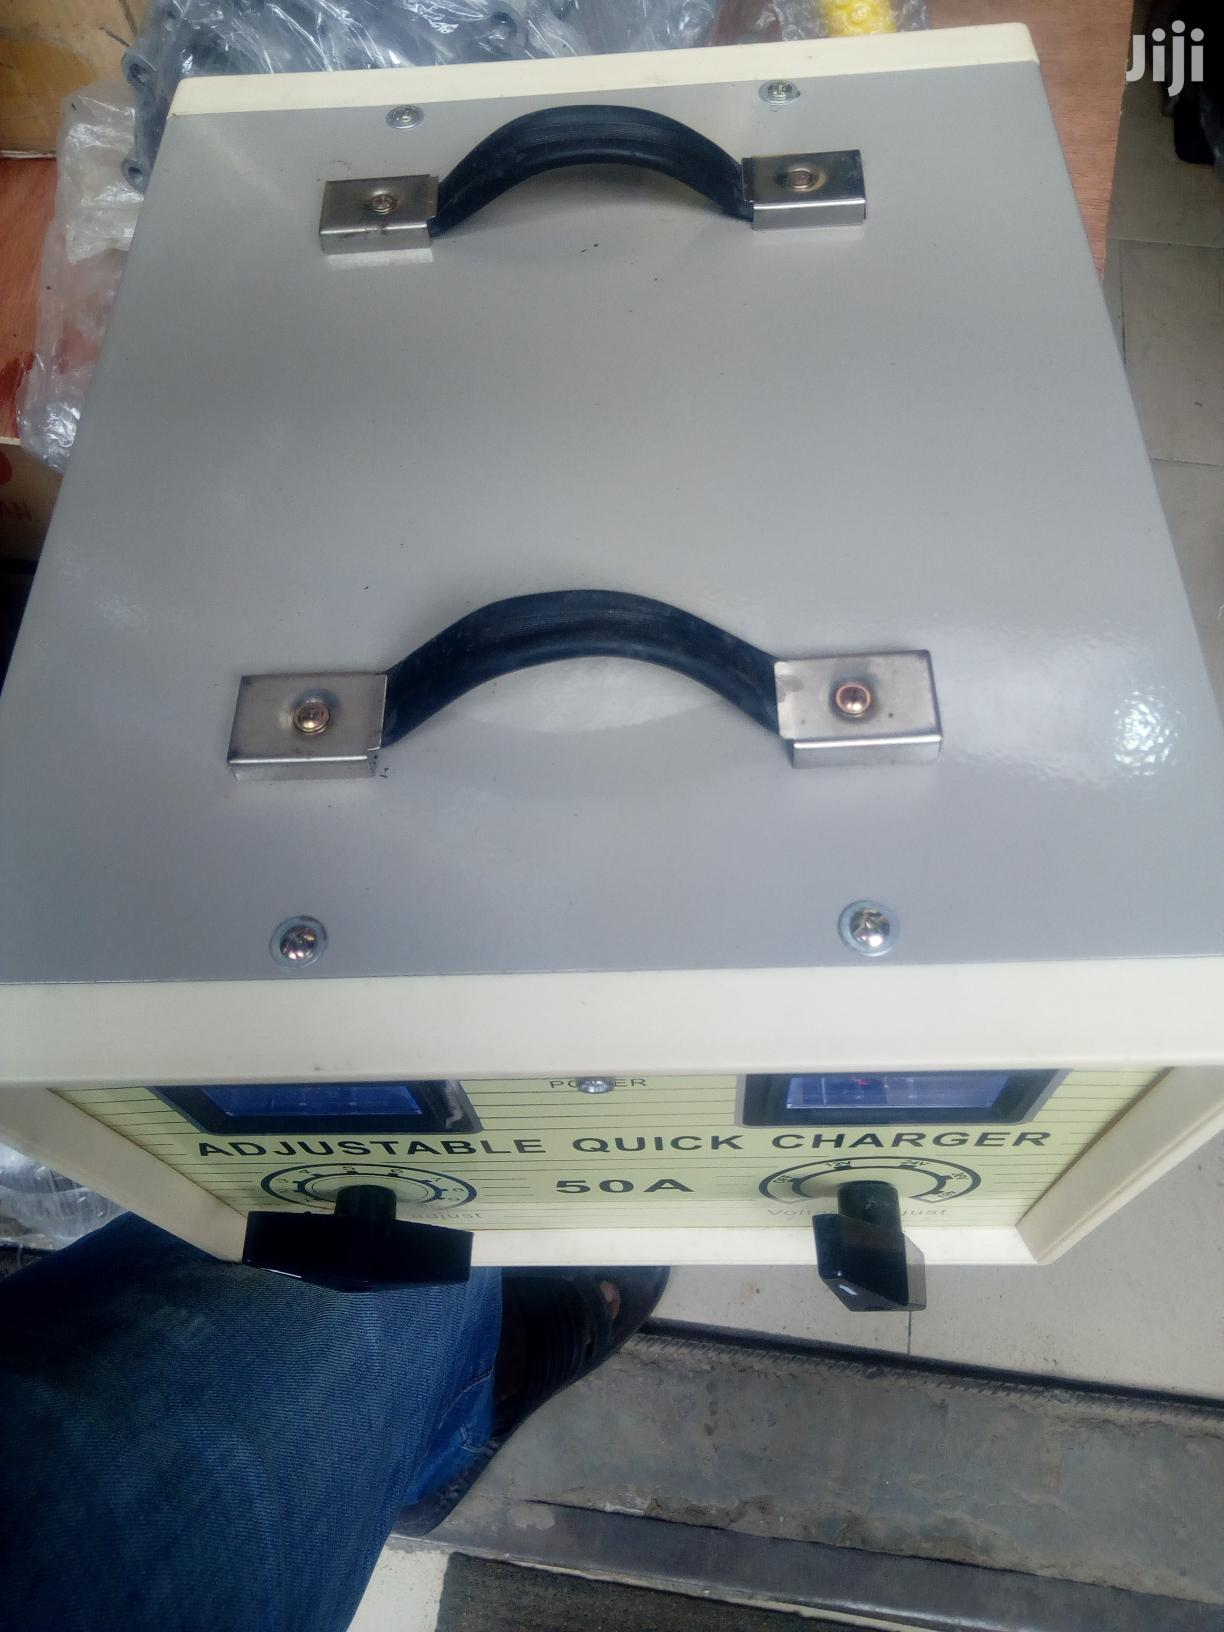 Battery Charger Machine | Electrical Equipment for sale in Ojo, Lagos State, Nigeria